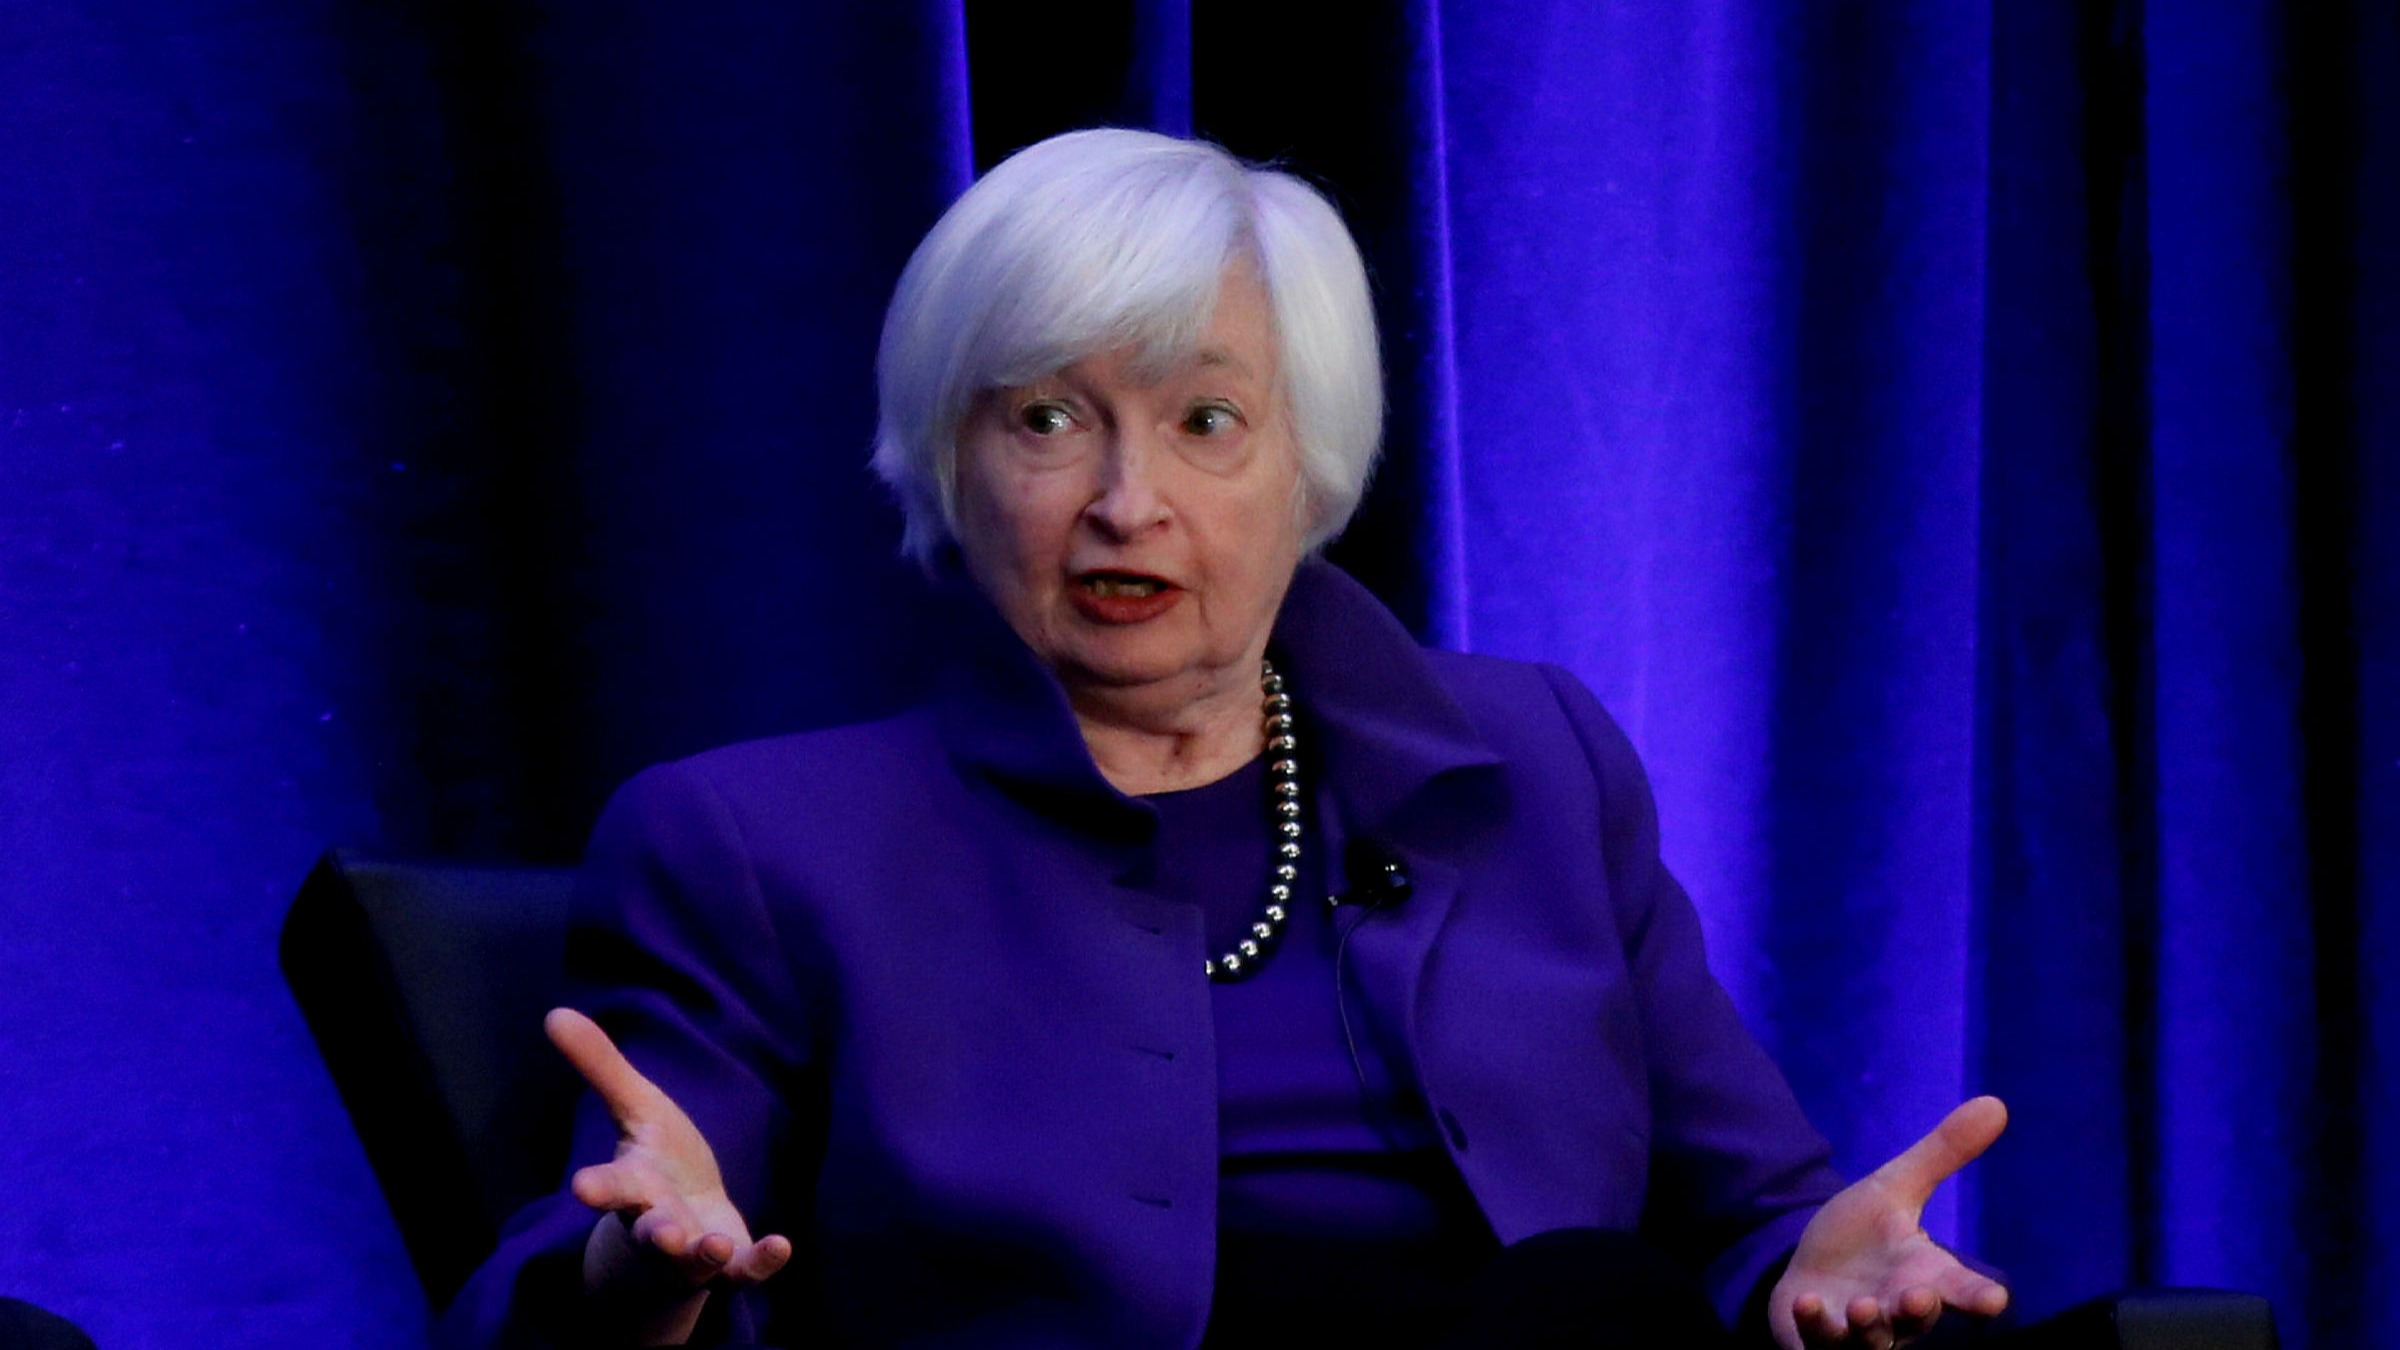 Janet Yellen calls for global minimum corporate tax | Financial Times